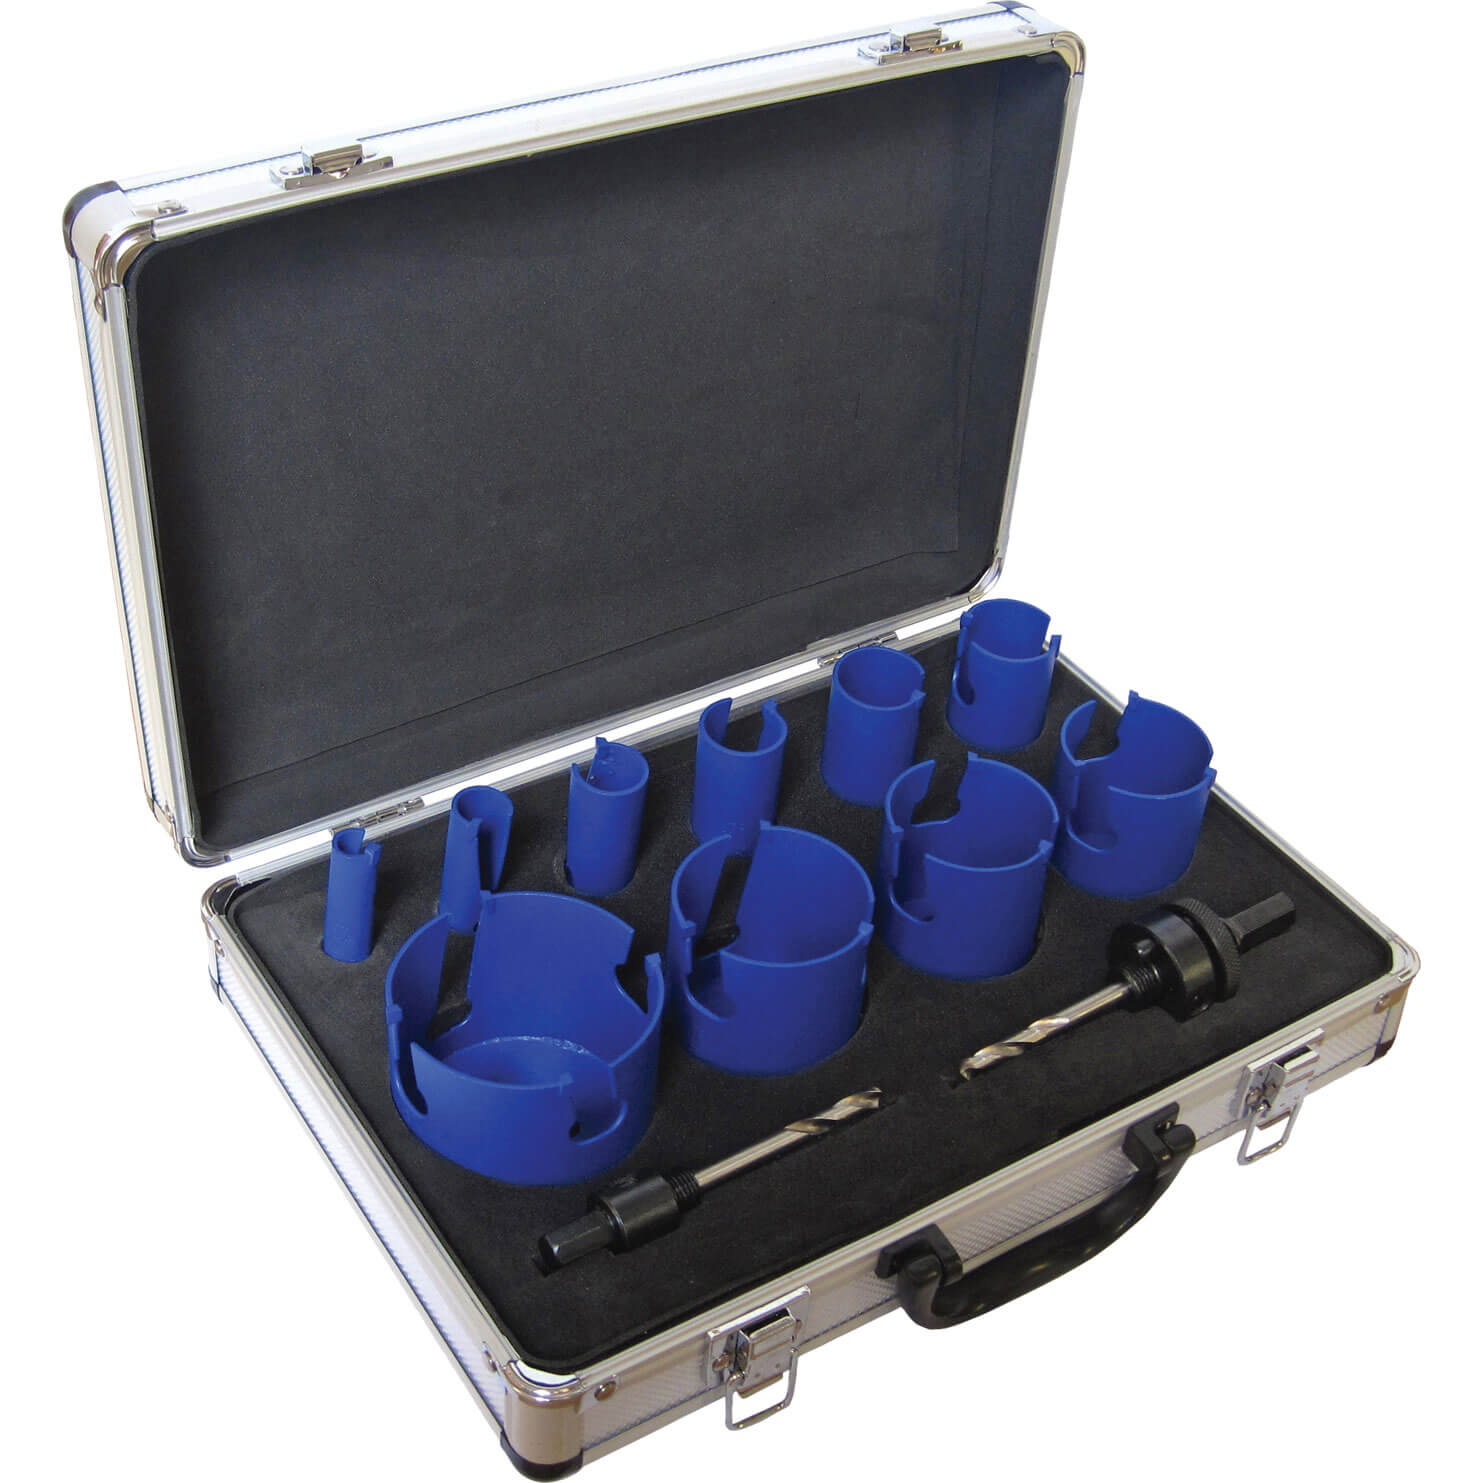 Image of Faithfull 12 Piece TCT Hole Saw Set